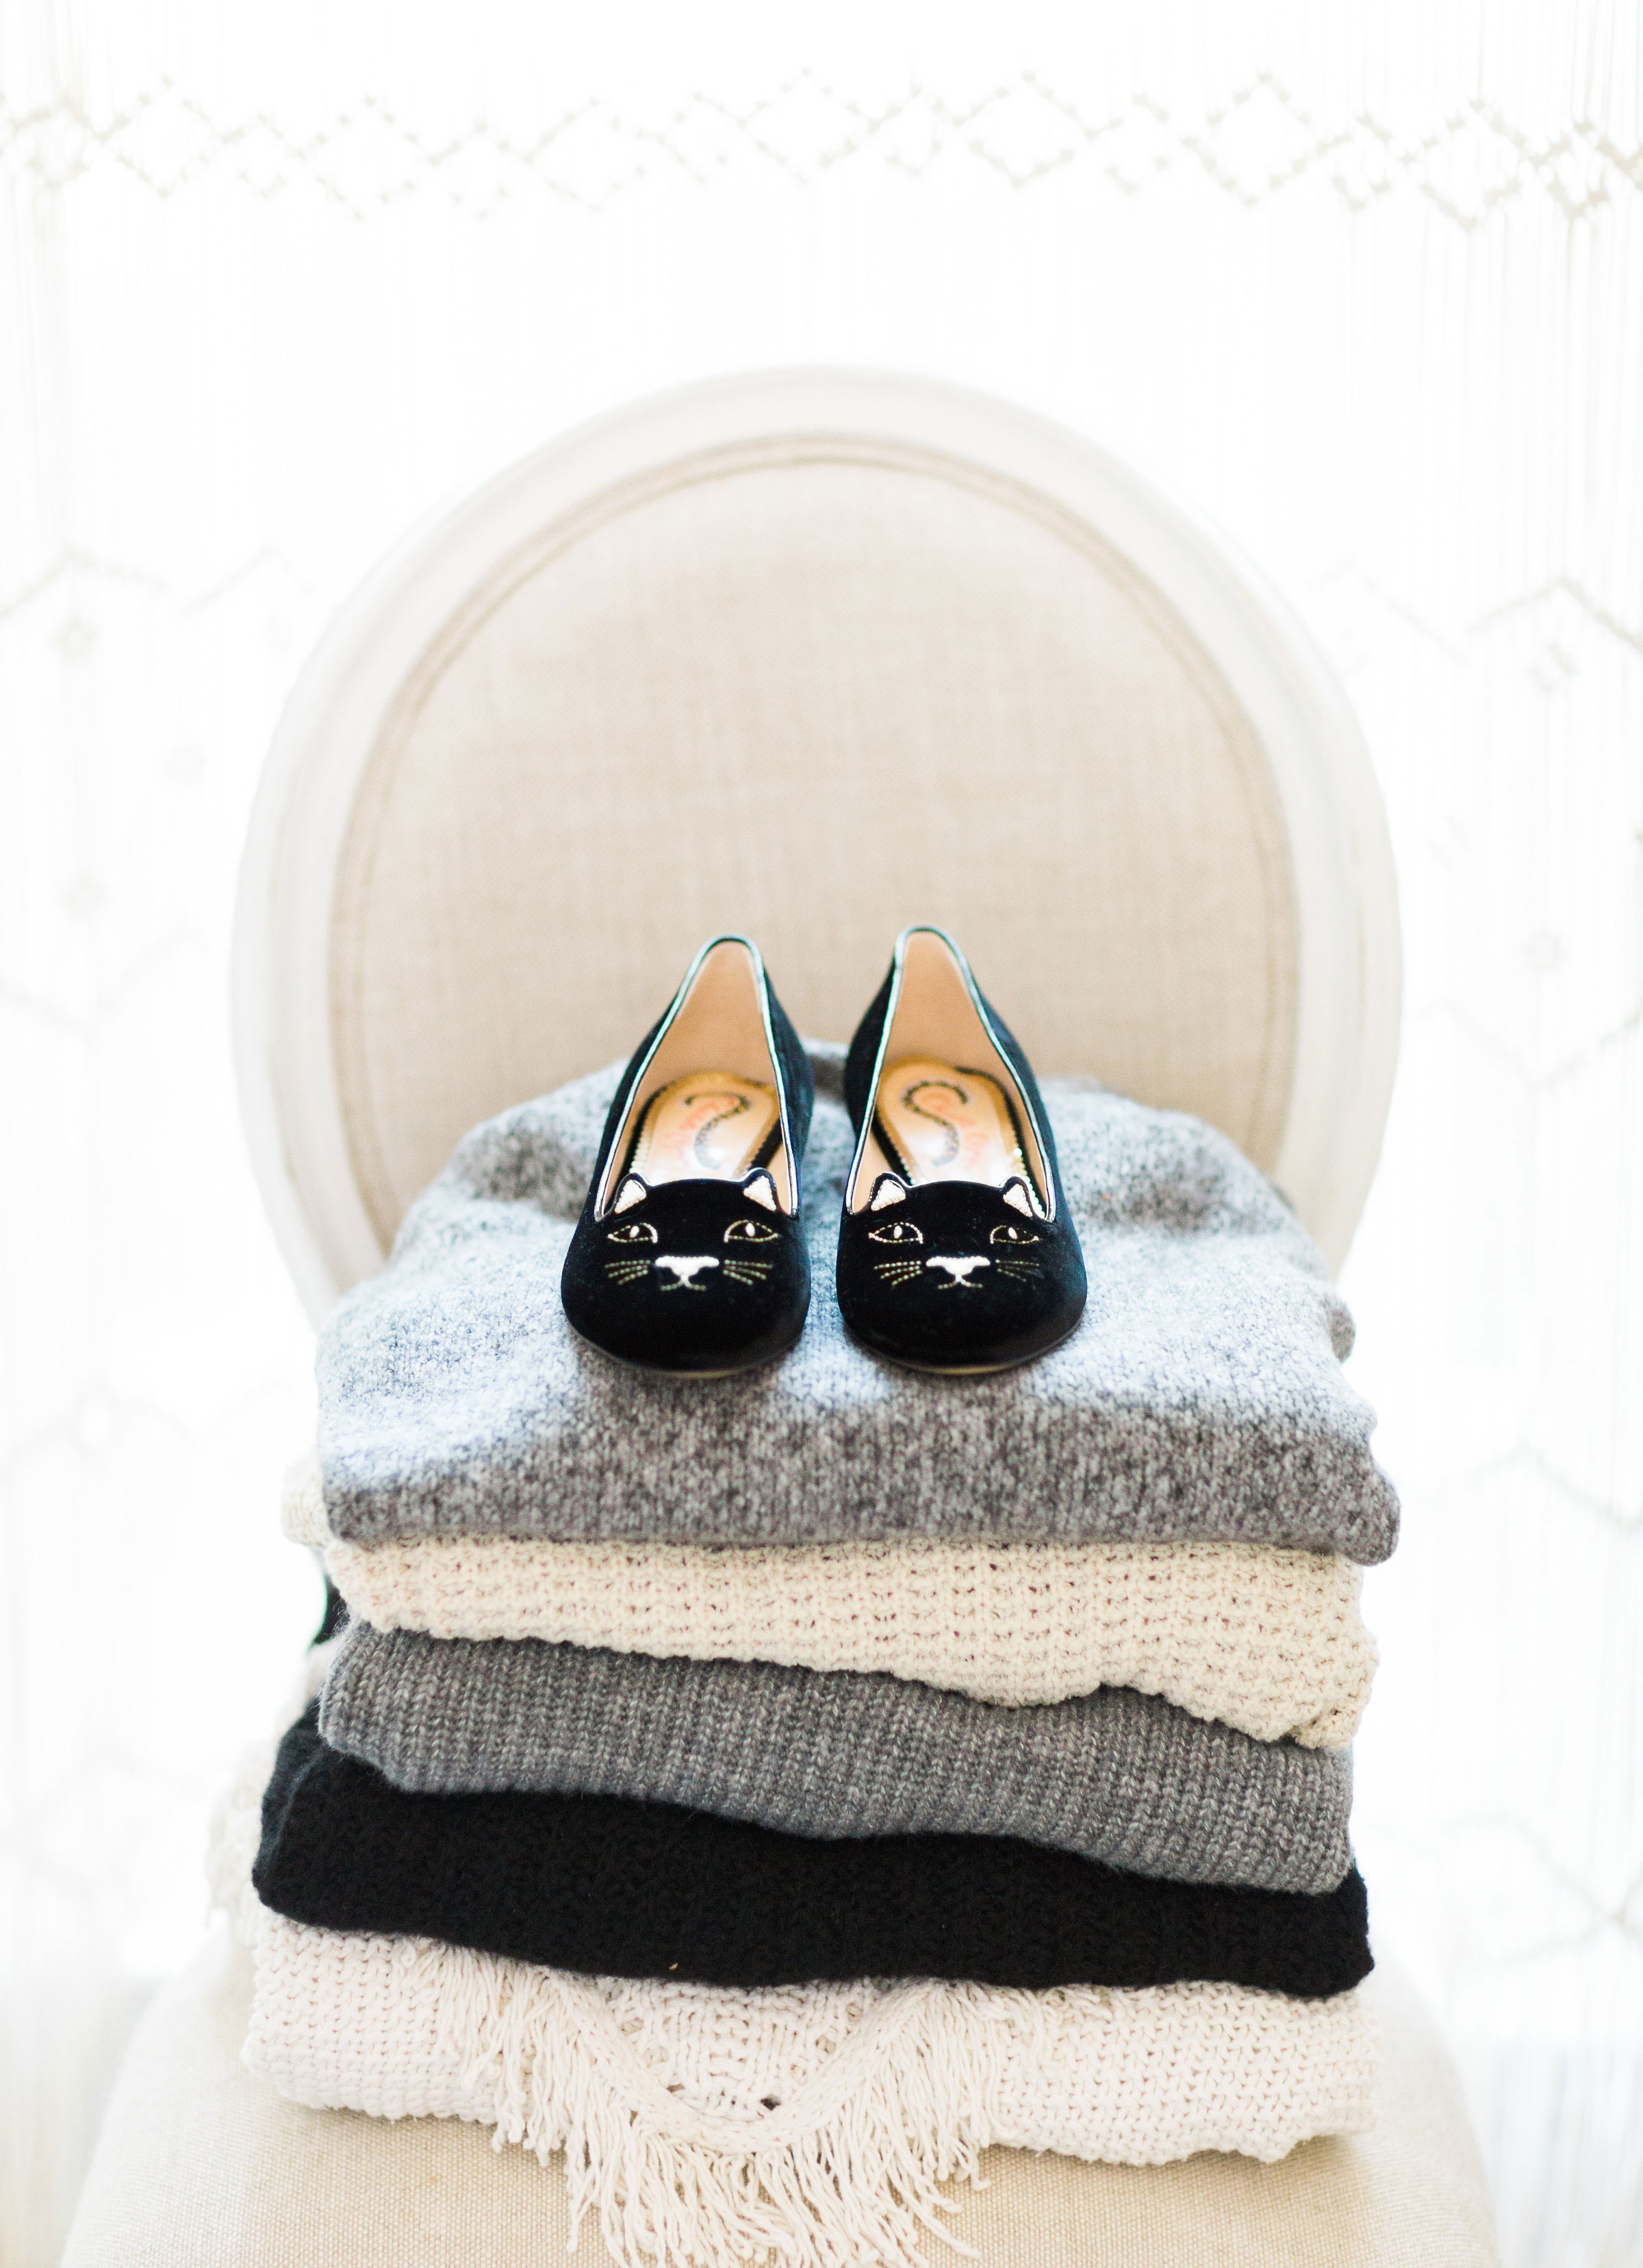 Here's how to Shop the HUGE Shopbop Sale (Just in Time for the Holidays!) | glitterinc.com | @glitterinc - How to Shop the HUGE Shopbop Sale (Just in Time for the Holidays!) by North Carolina style blogger Glitter, Inc.